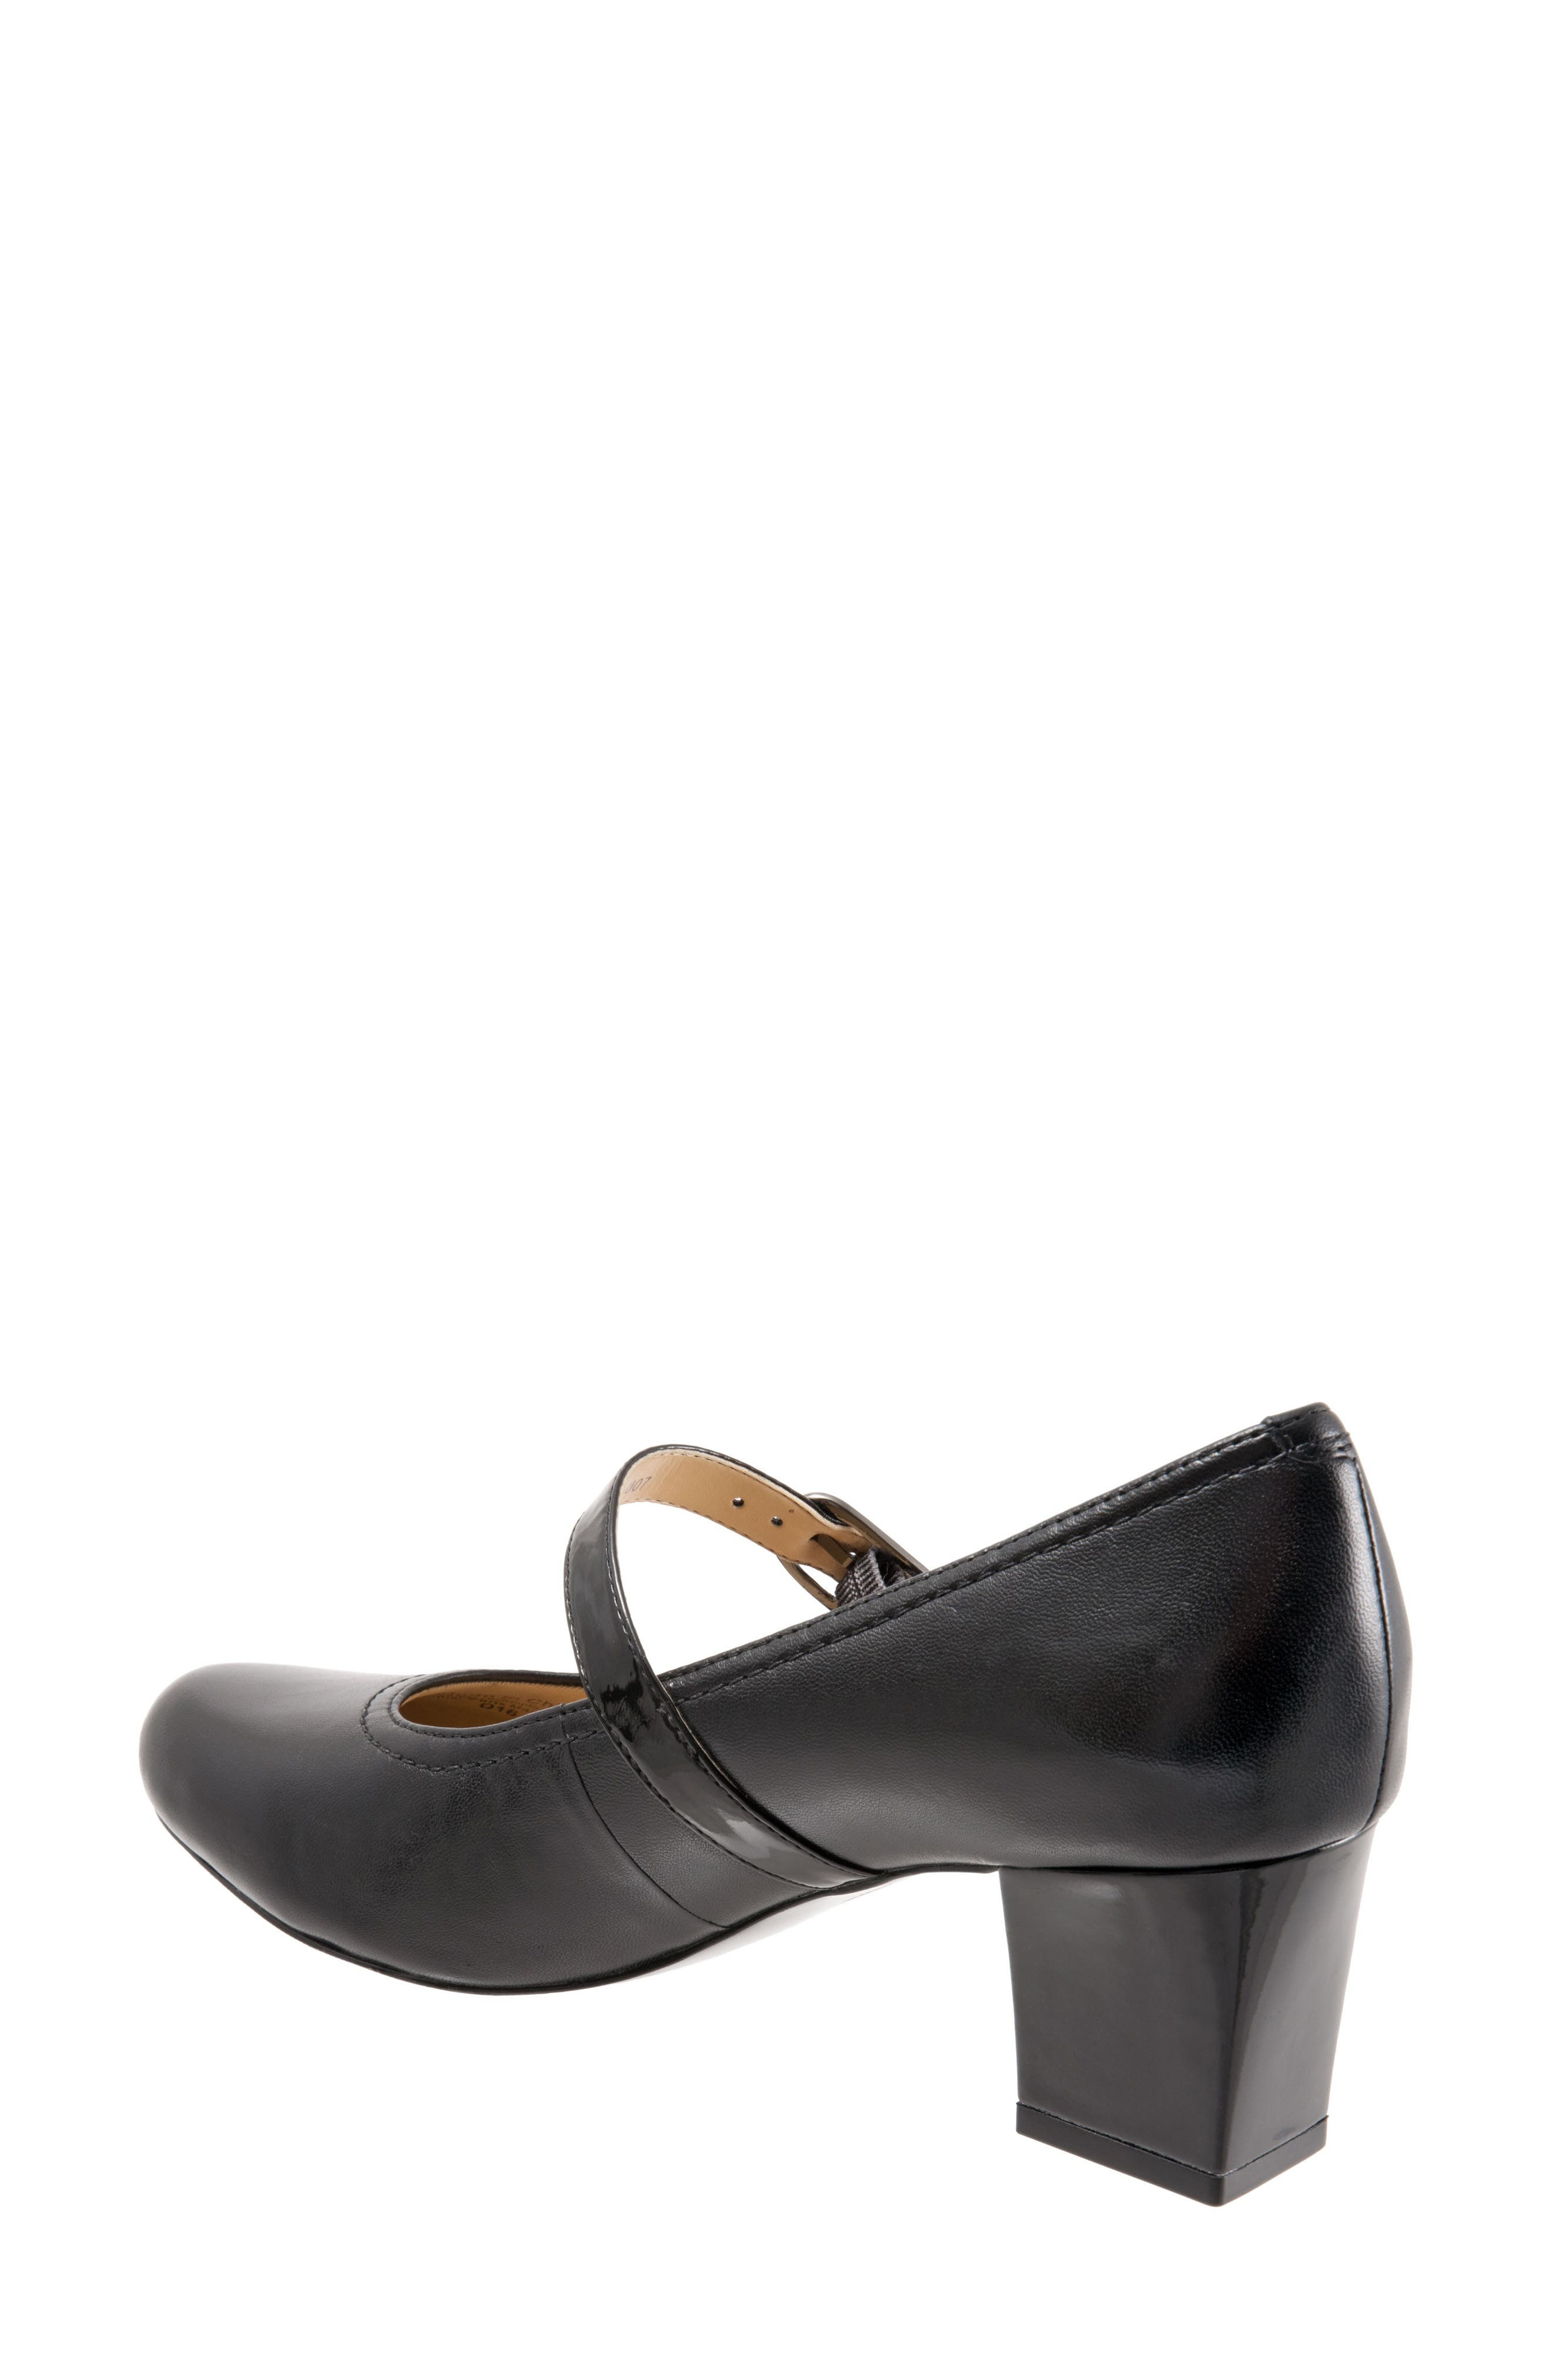 TROTTERS, 'Candice' Mary Jane Pump, Alternate thumbnail 4, color, BLACK LEATHER